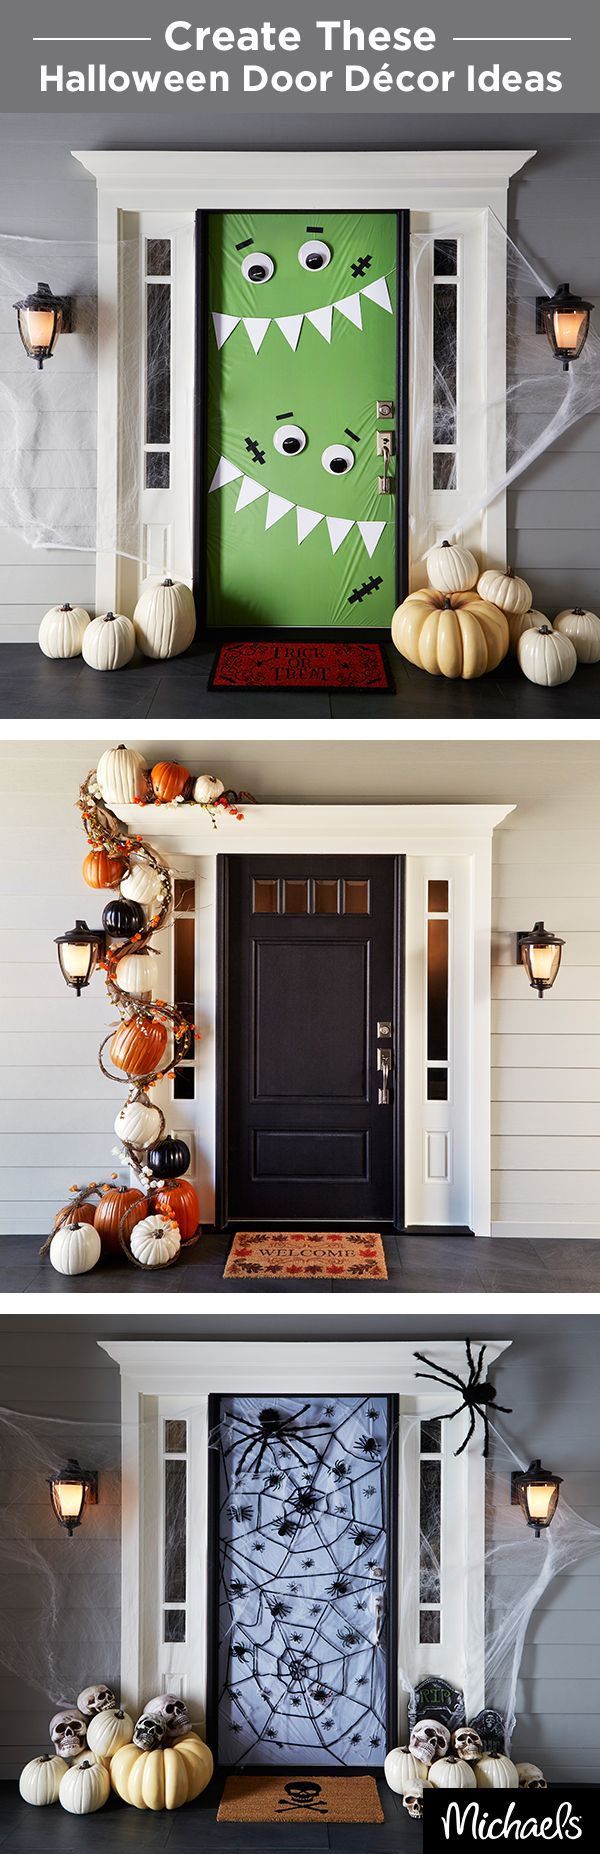 halloween decorations decorate your front door for trick or treaters this halloween these 3 door dcor ideas are simple to make and will welcome even the - Michaels Halloween Decorations